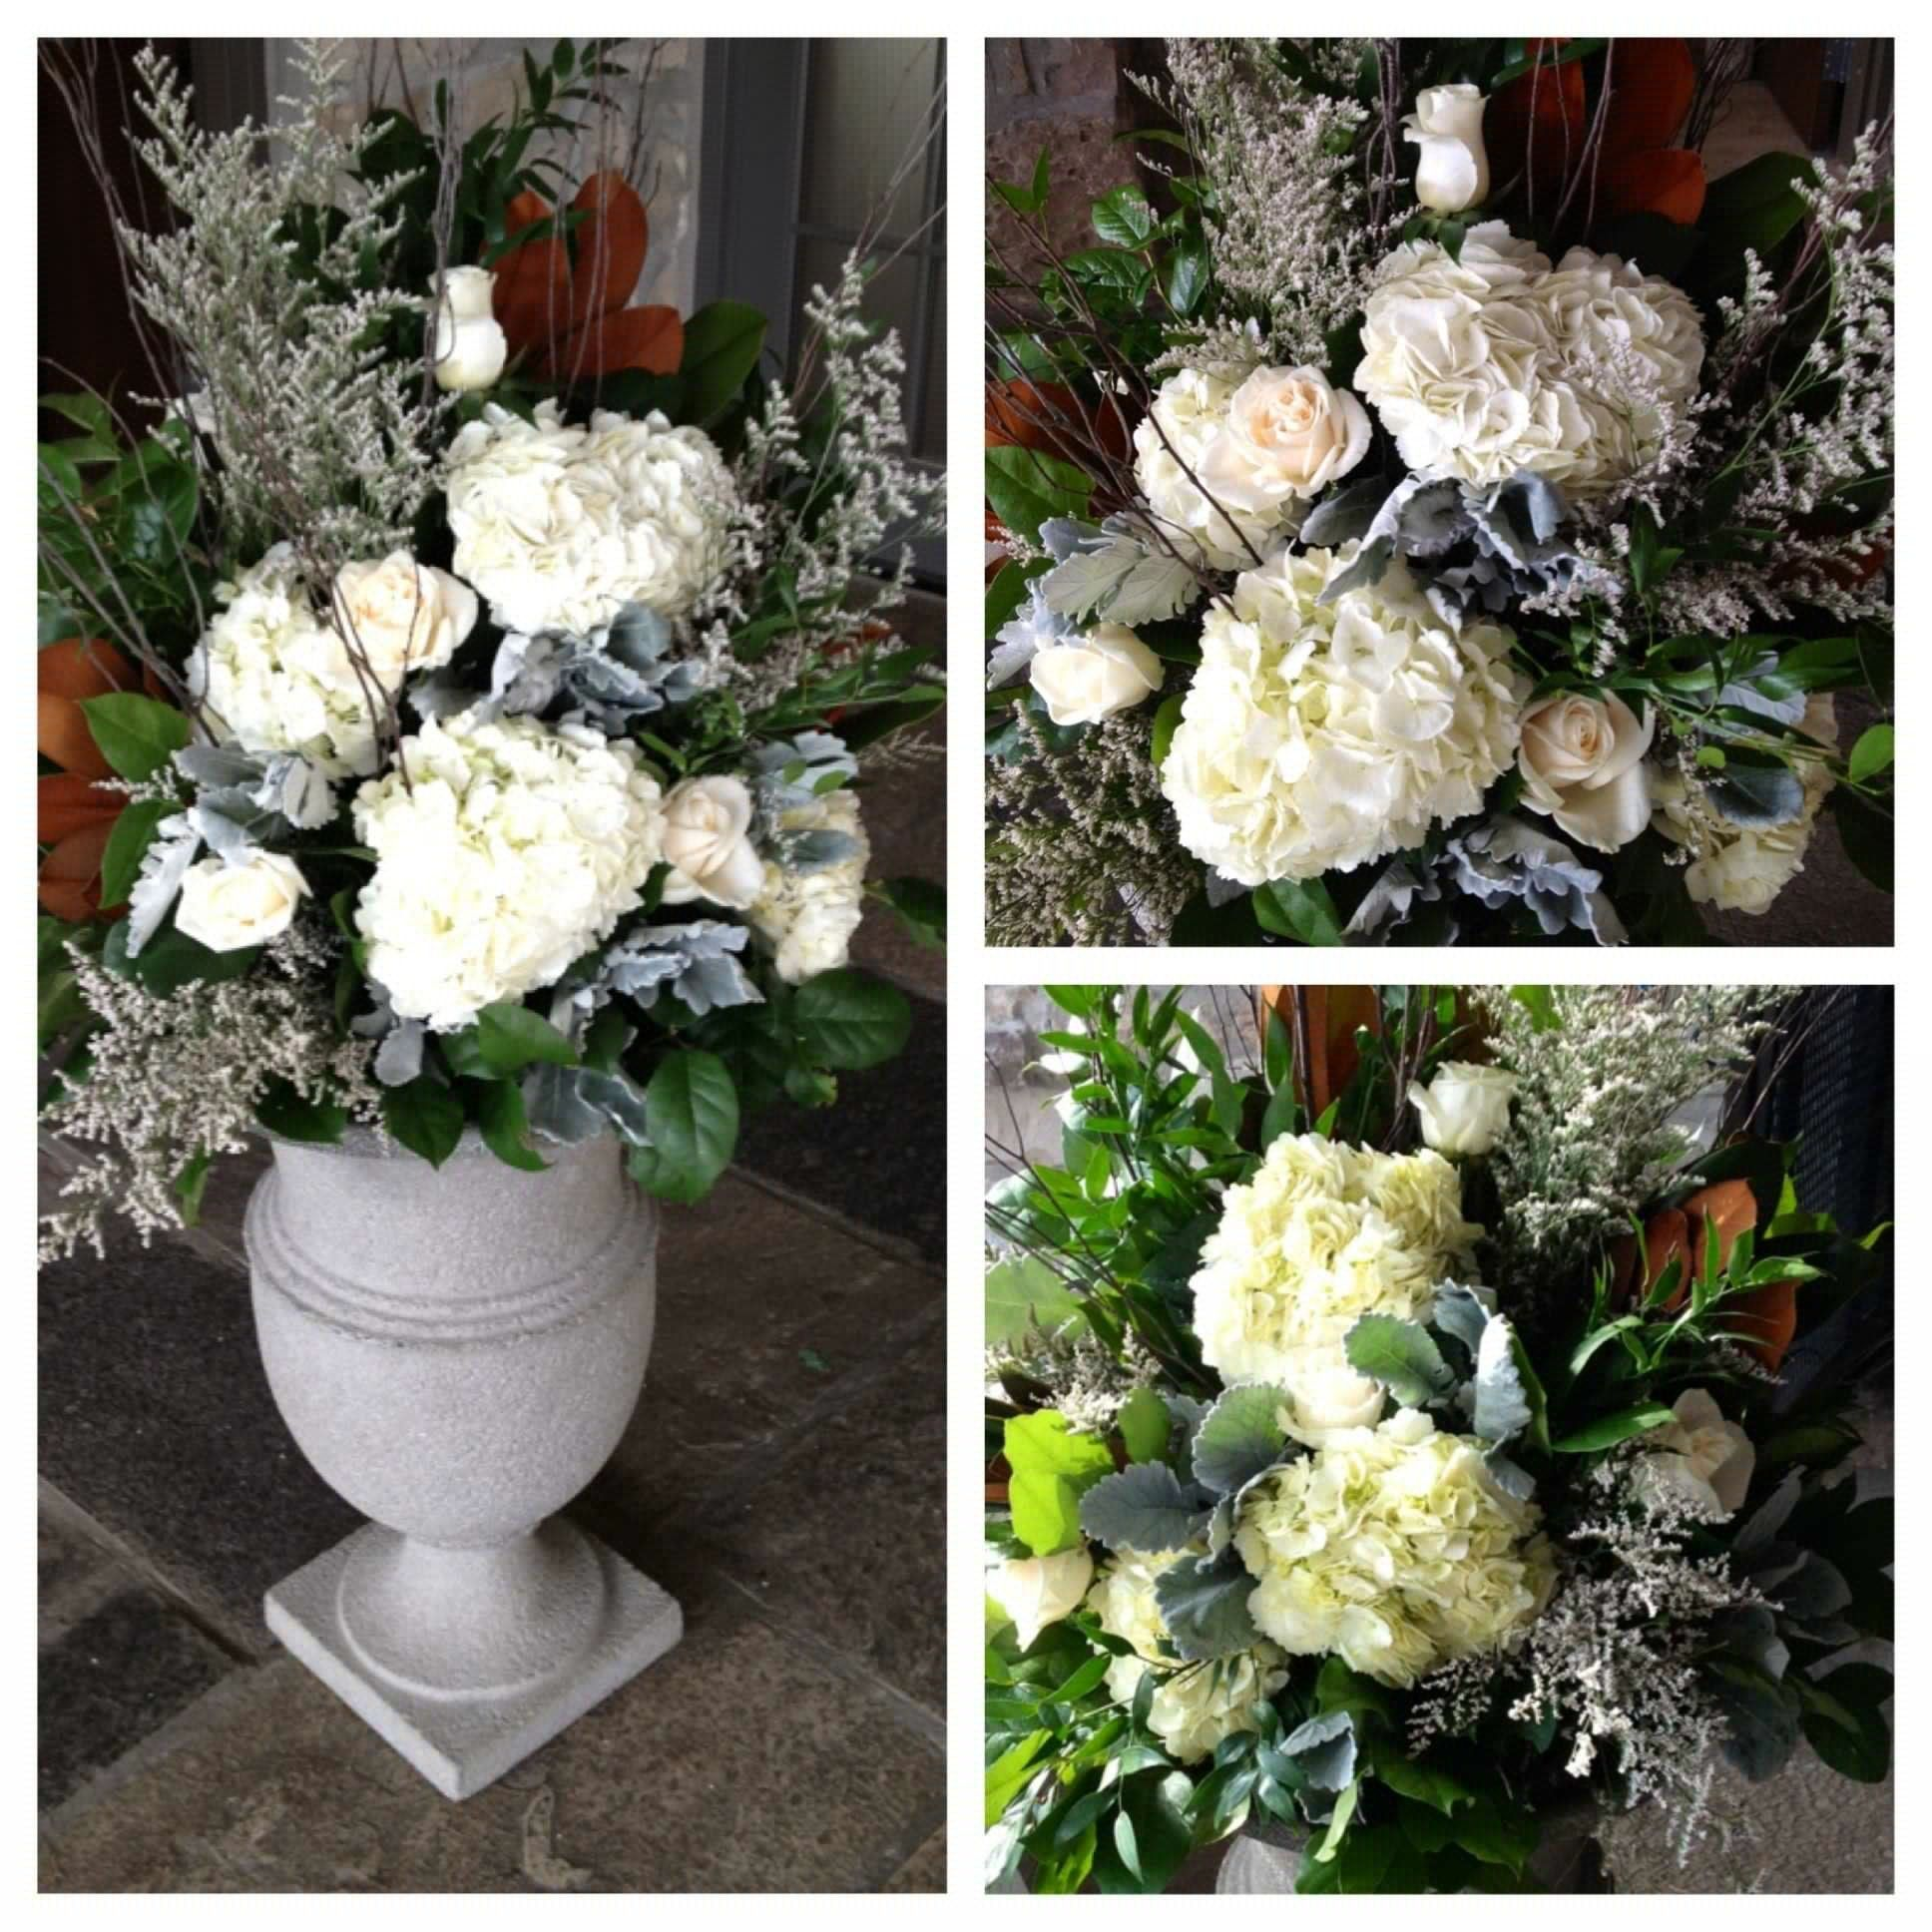 Floral Urns For Weddings: WINTER WEDDING, Urns For Ceremony/moved To Head Table